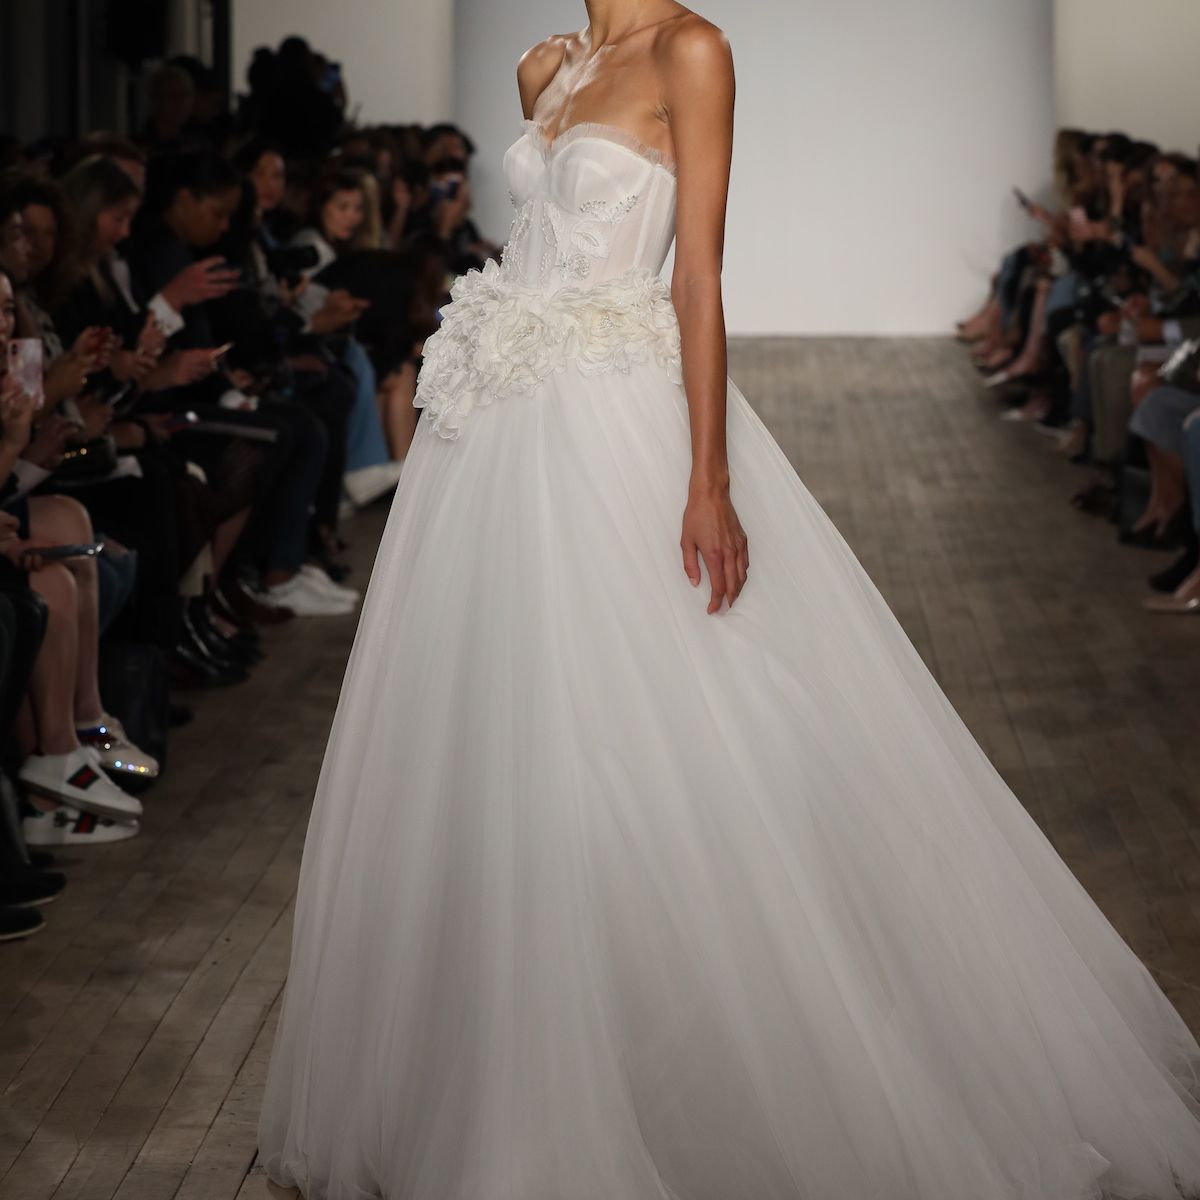 Model in strapless corseted wedding ball gown